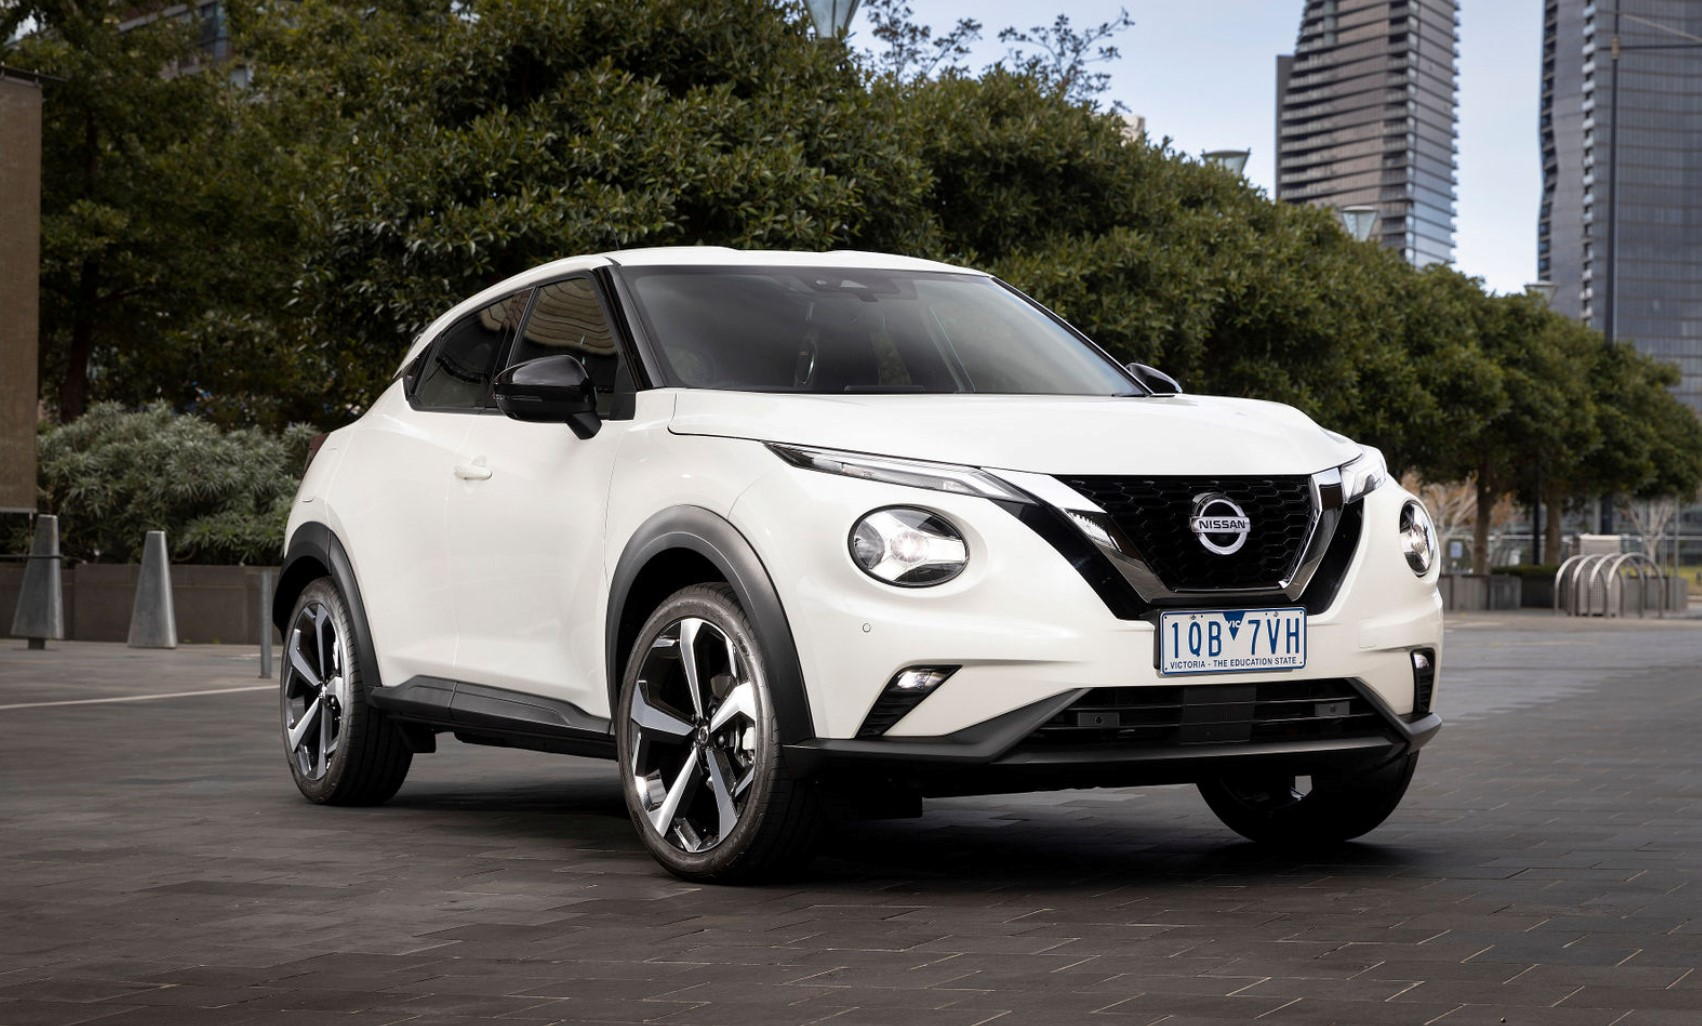 2020 Nissan Juke Review And Video Practical Motoring